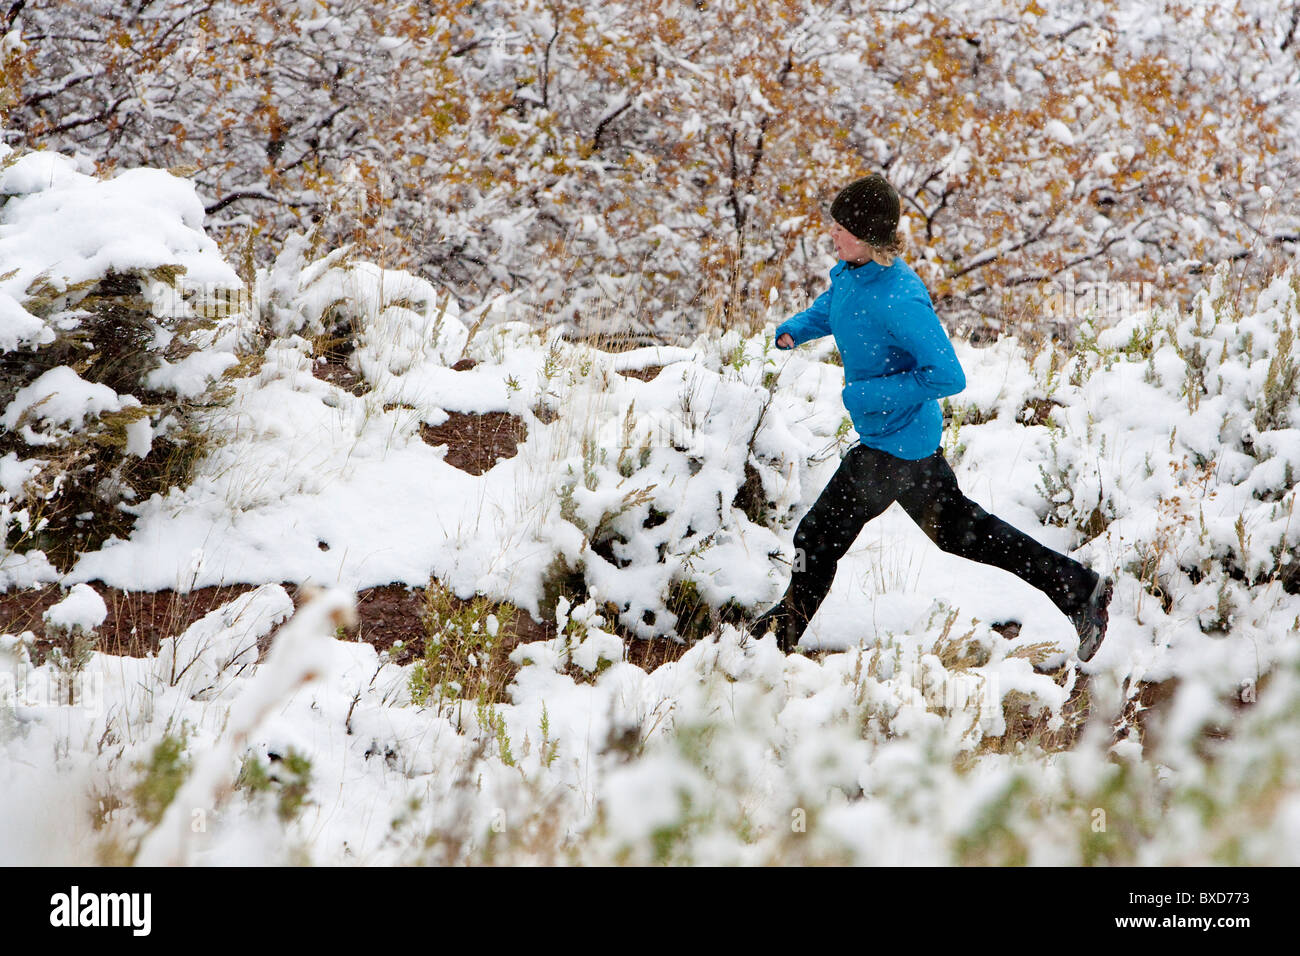 A woman out trail running after a light snowfall. - Stock Image